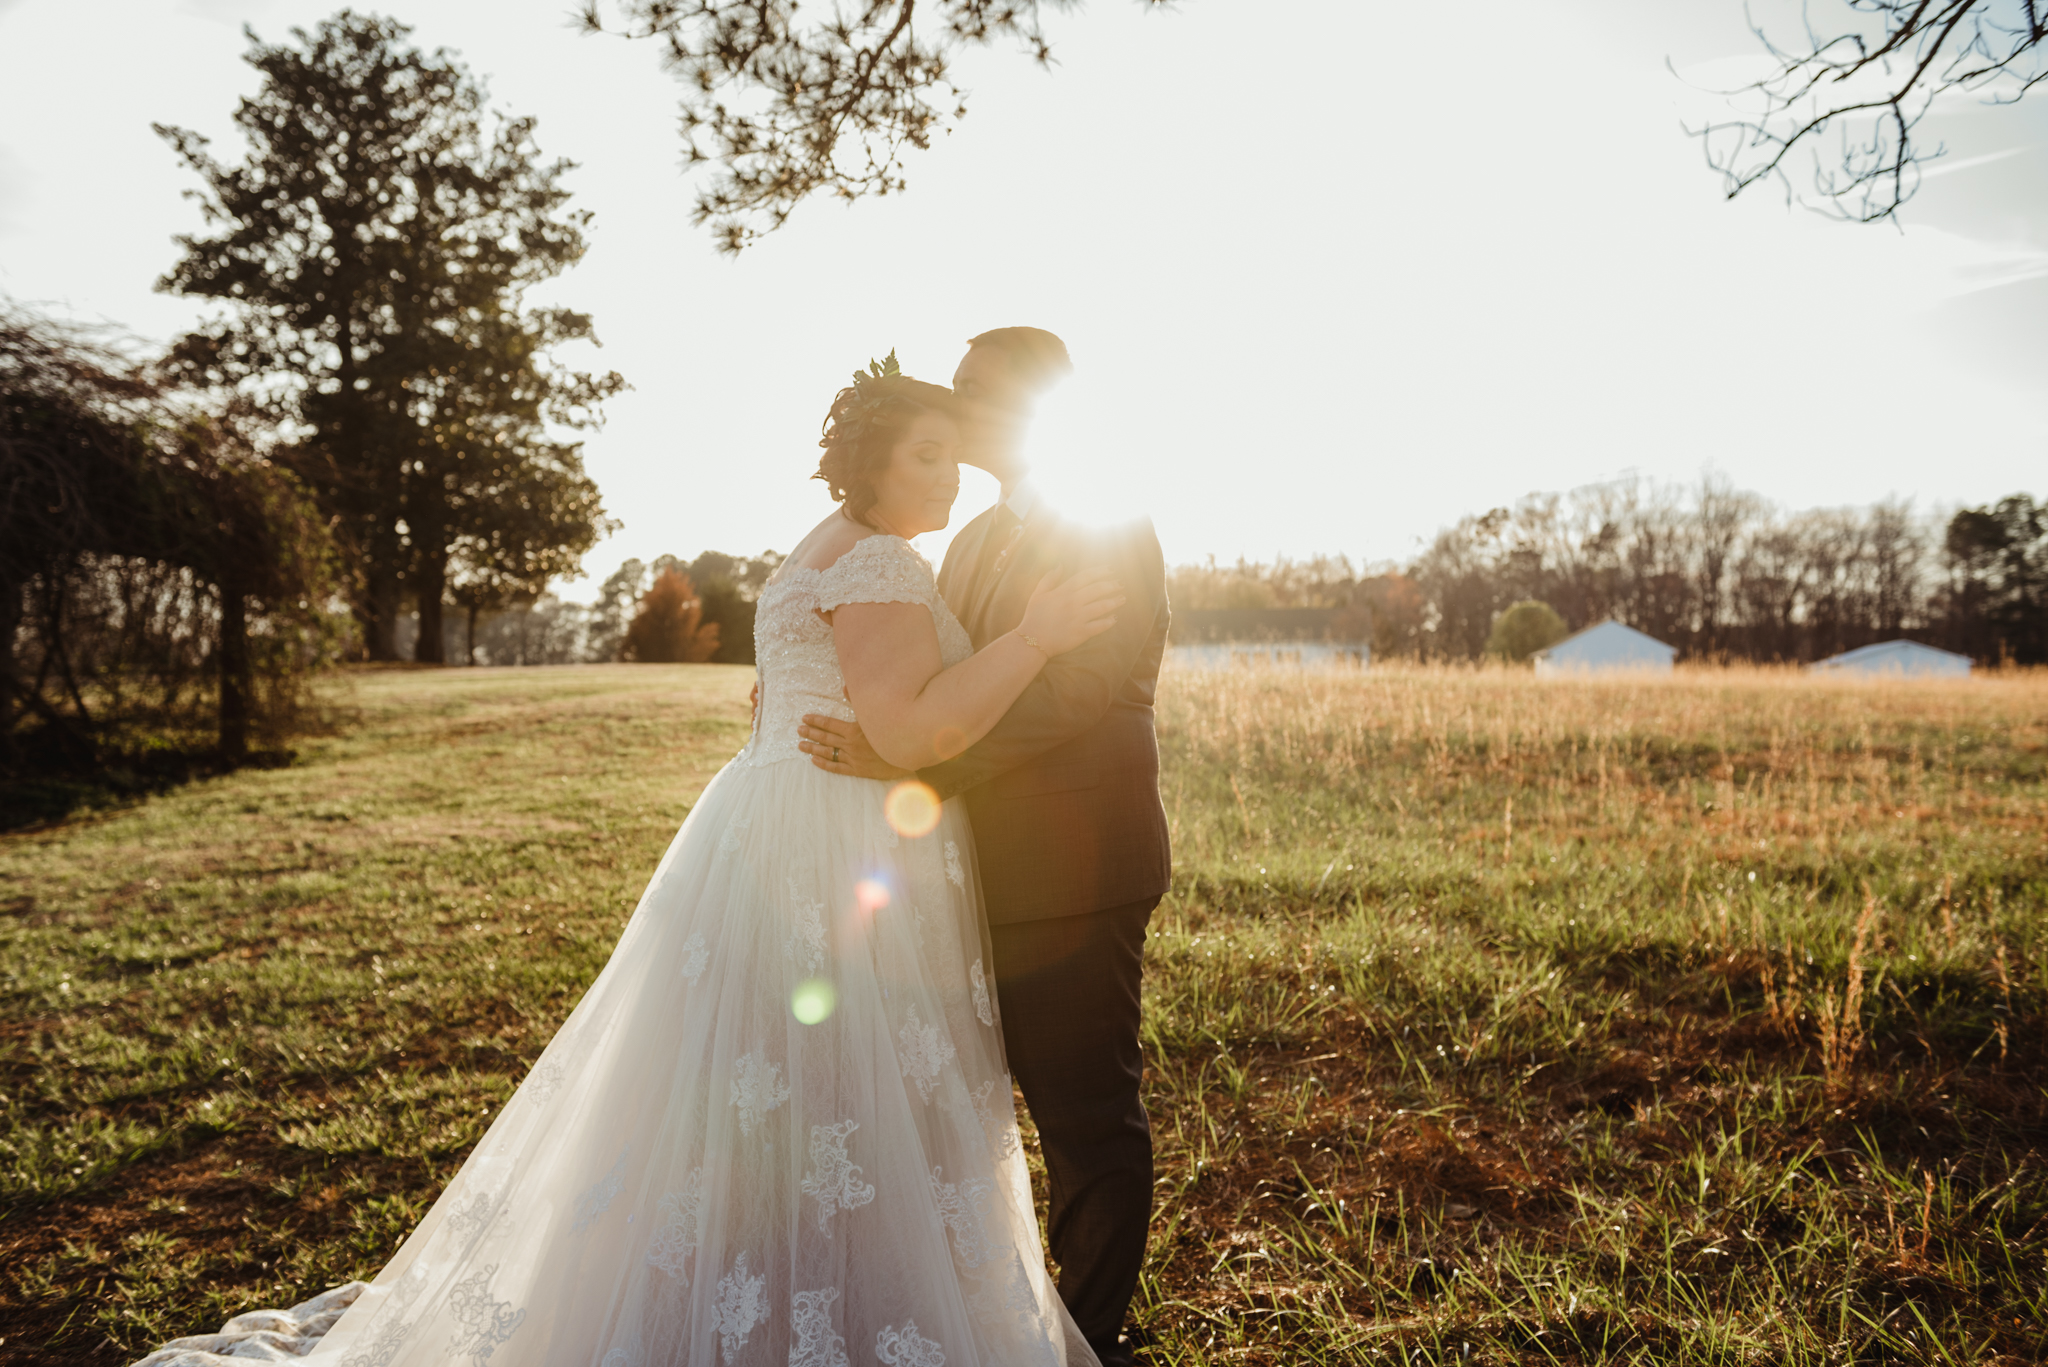 Raleigh-wedding-photographer-bride-and-groom-portraits-at-sunset-barn-at-valhalla-rose-trail-images.jpg